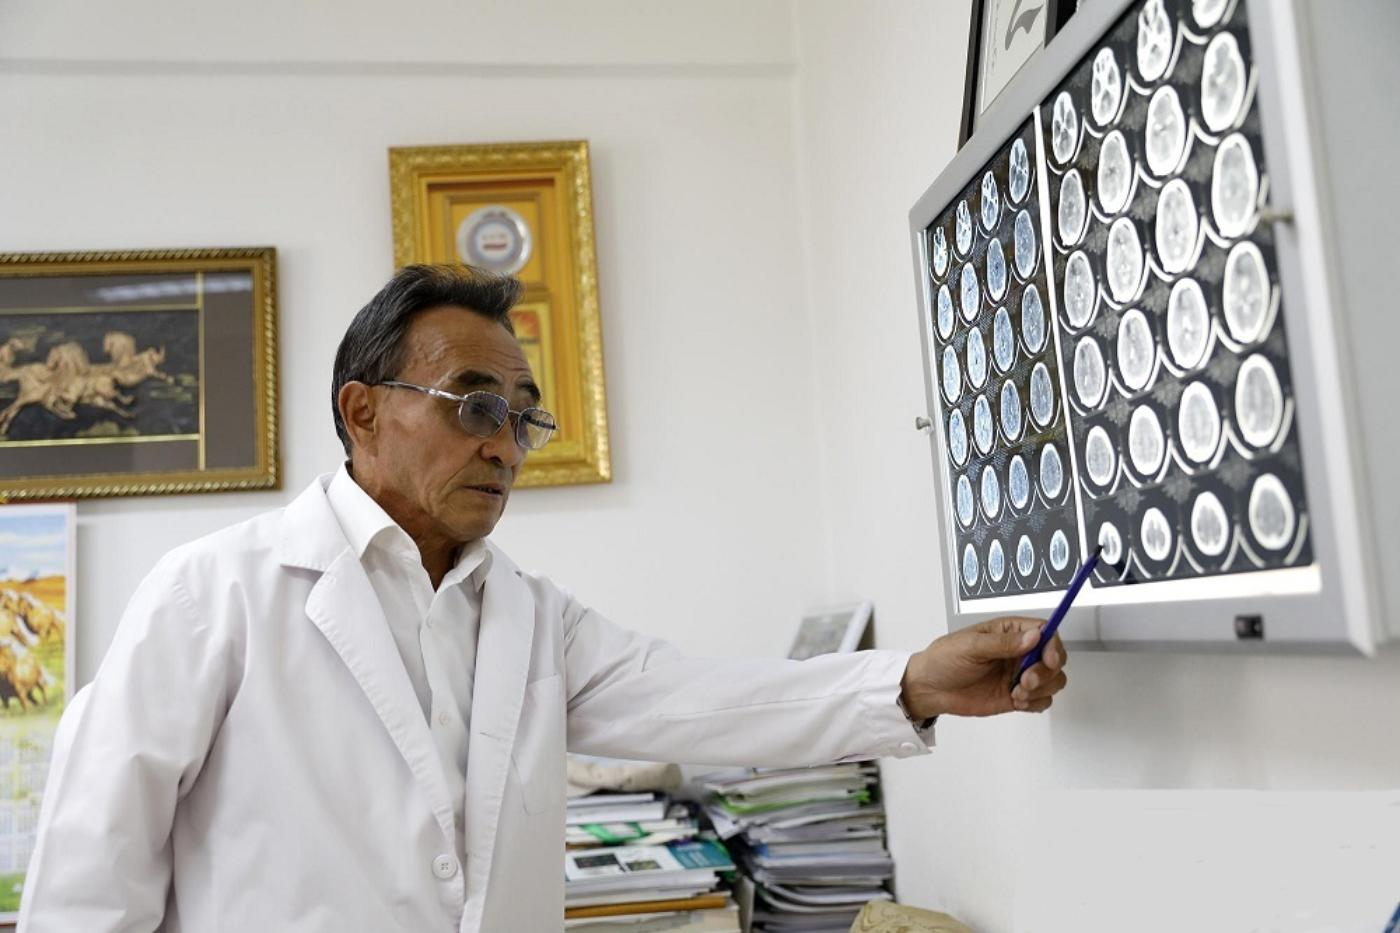 Veteran neurosurgeon undertakes project to introduce complicated surgeries